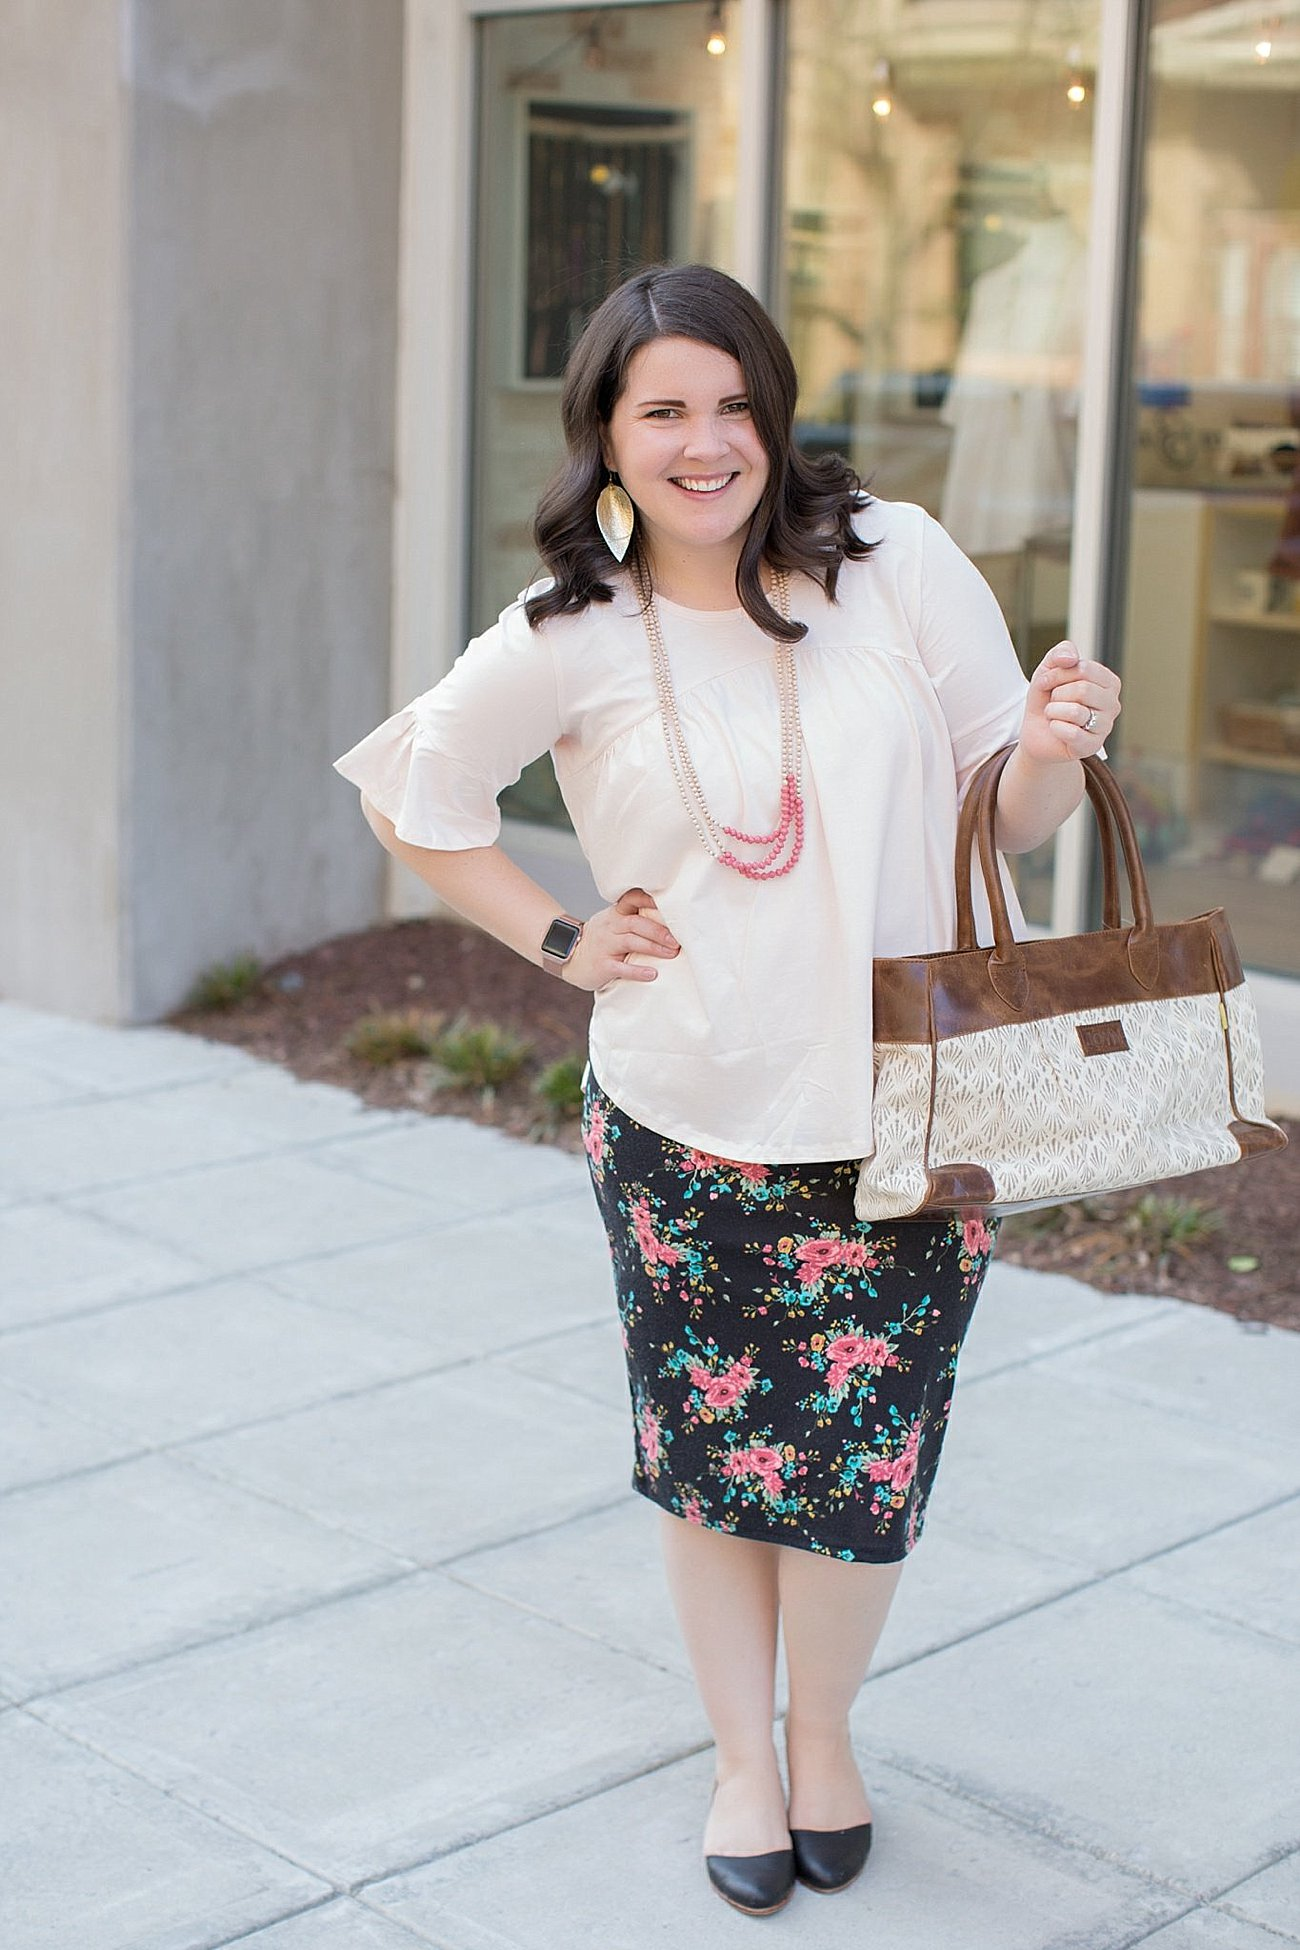 Spring Has Sprung - Ethical Fashion Spring Ideas by fashion blogger Still Being Molly